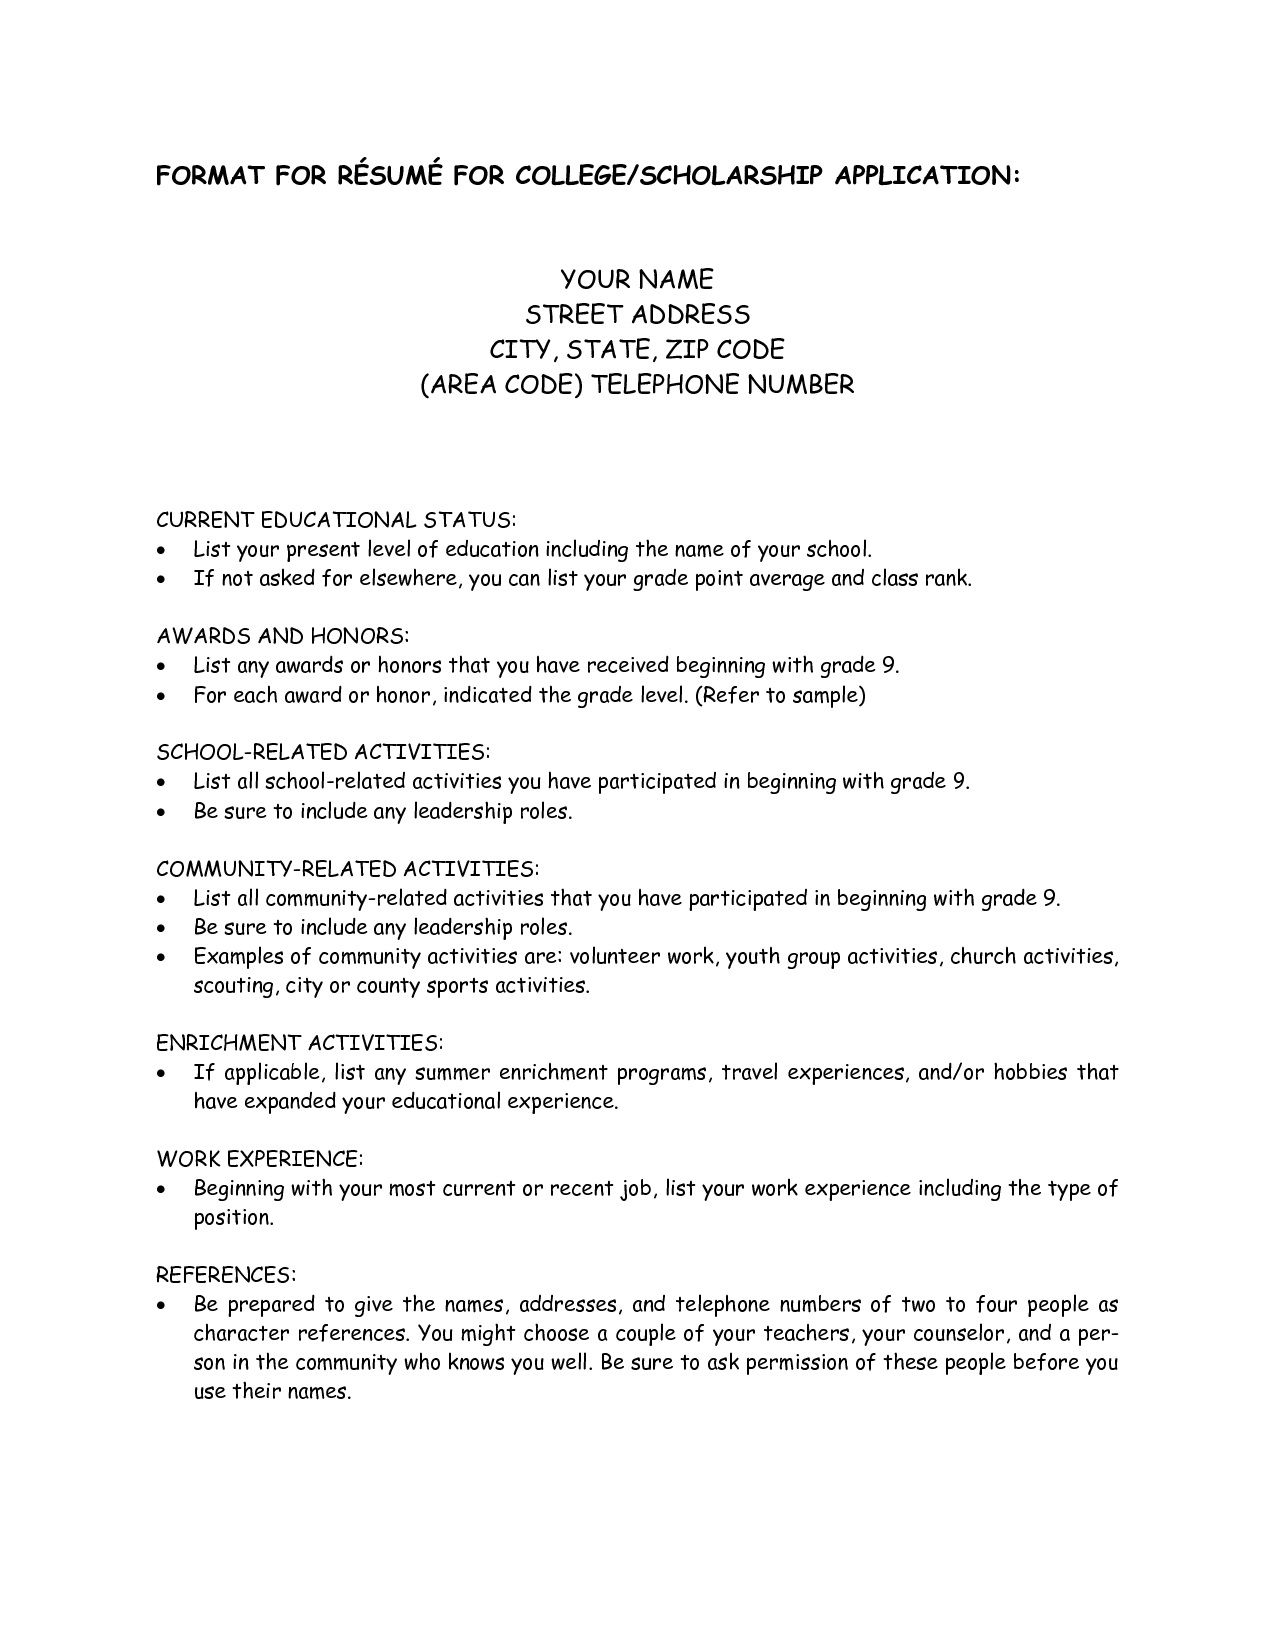 College Scholarship Resume Template 1197 http